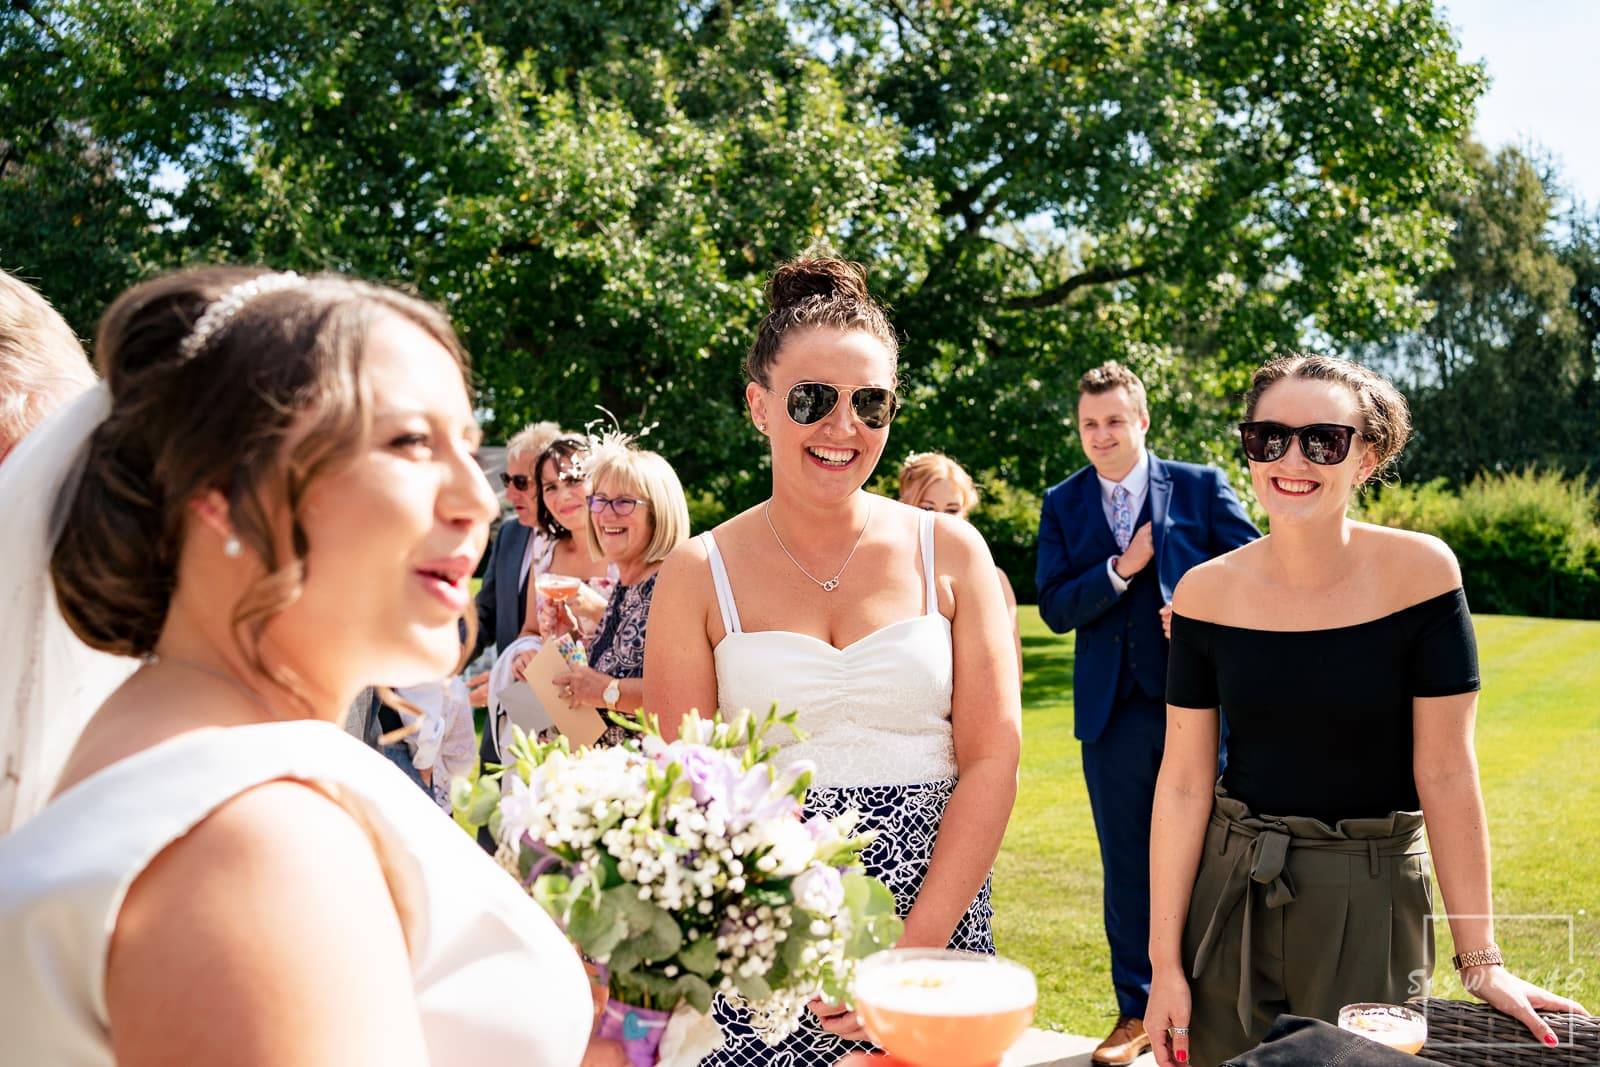 Winstanley House Wedding Photography - Bride and Groom meet their wedding guests following their outdoor wedding ceremony